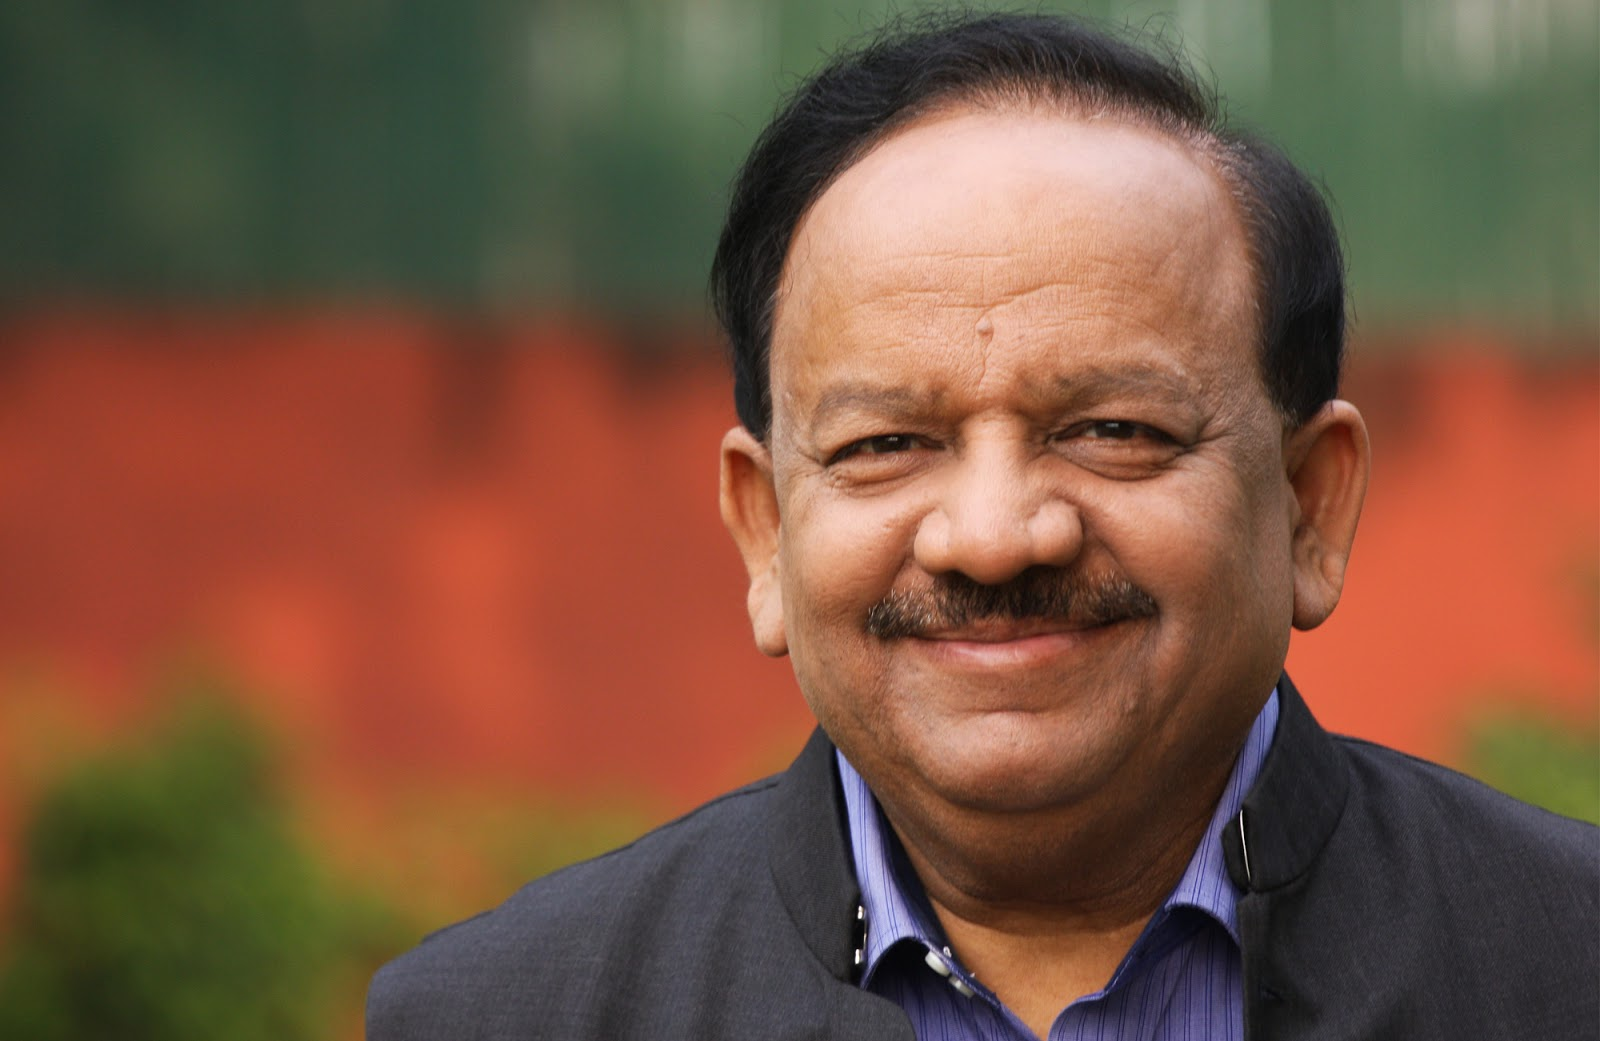 Dr. Harsh Vardhan to lead the Indian delegation in the Mission Innovation Ministerial